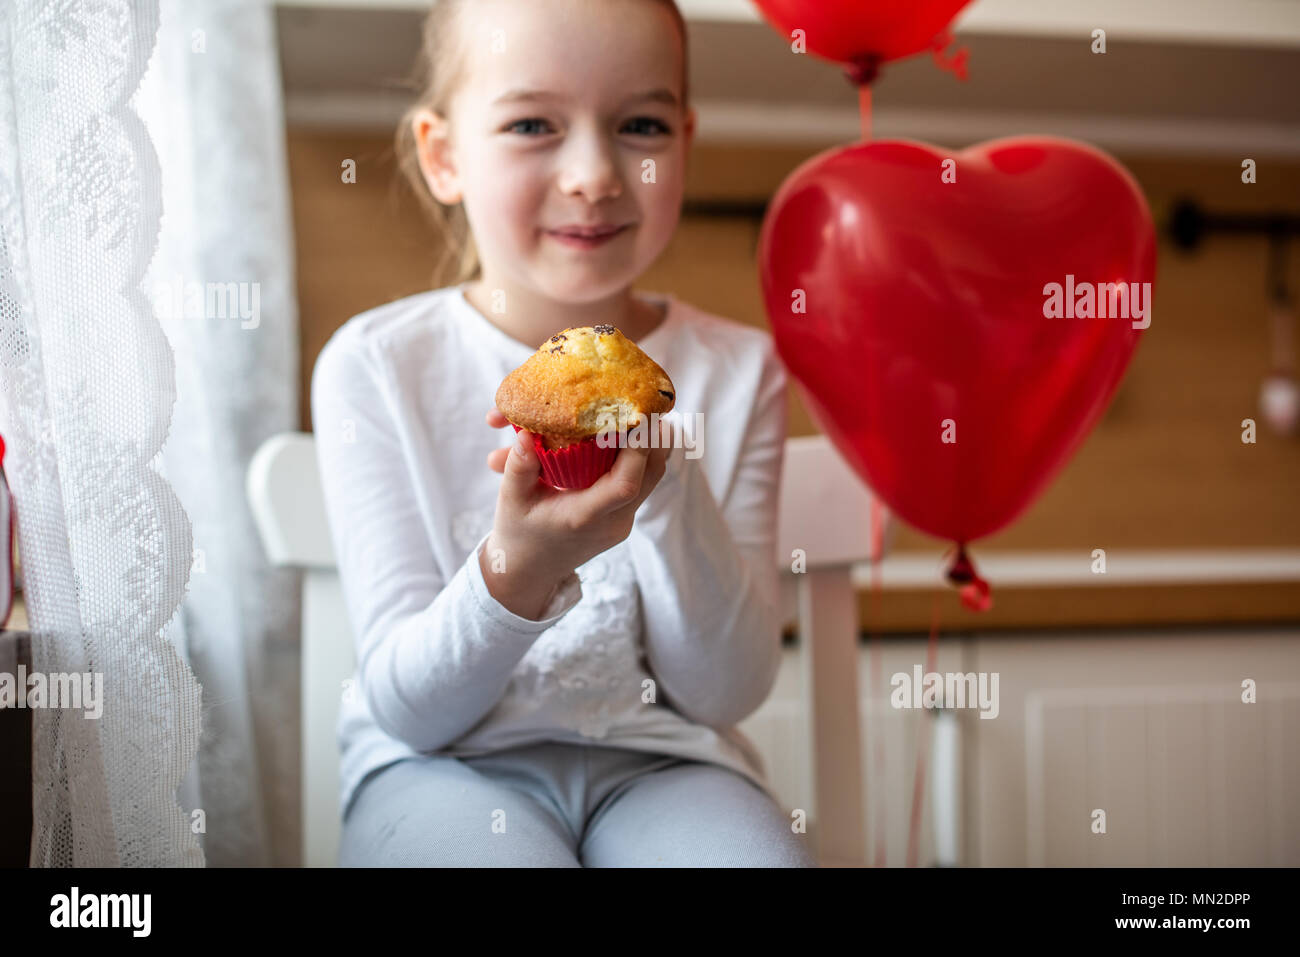 Cute preschooler girl celebrating 6th birthday. Girl eating her birthday cupcake in the kitchen, surrounded by balloons. - Stock Image